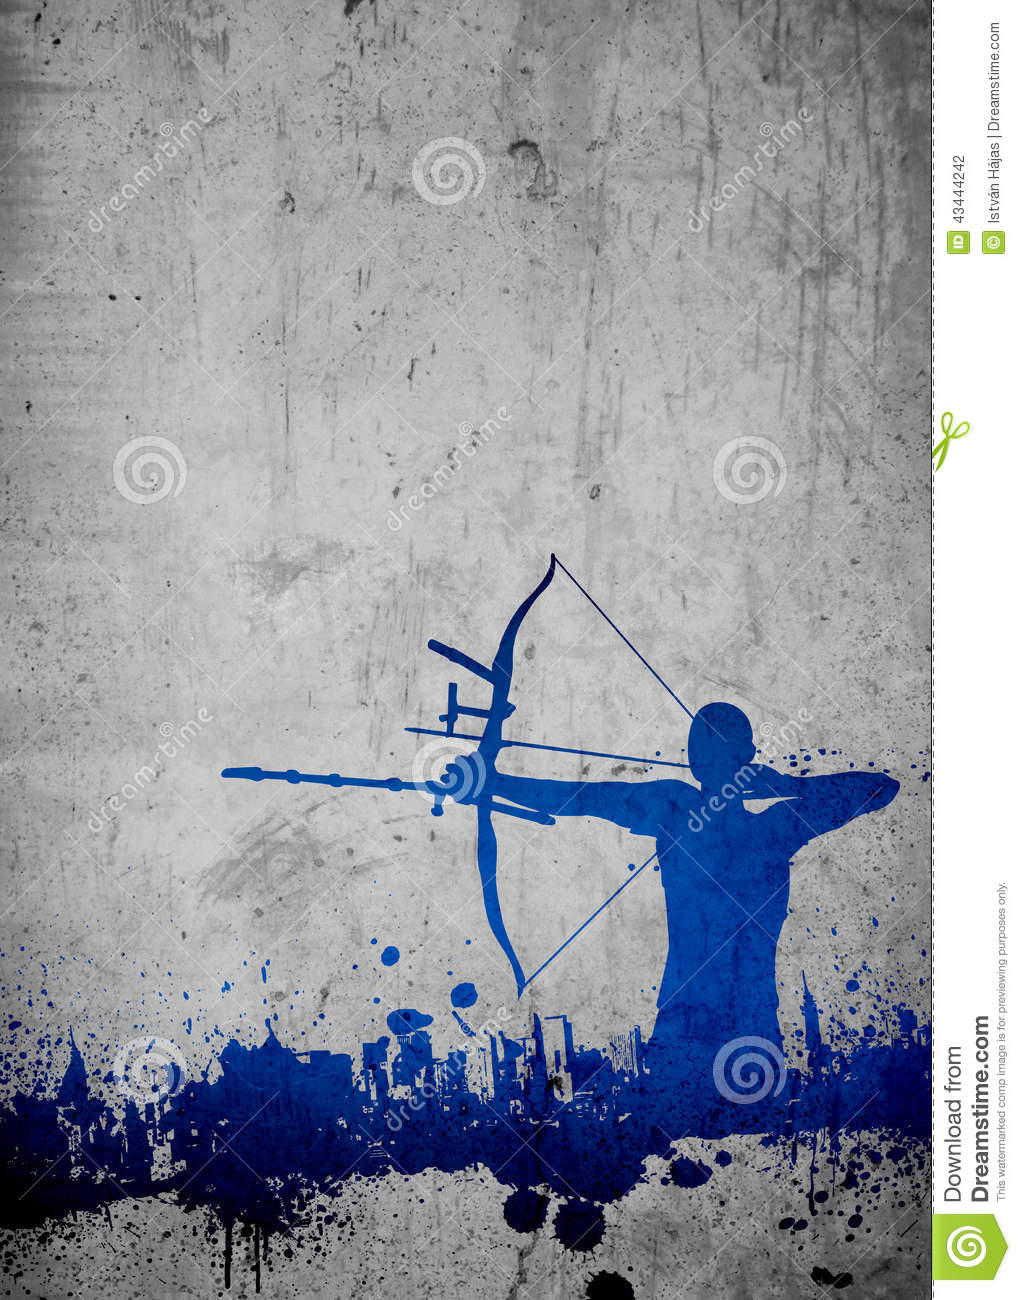 traditional archery wallpaper - photo #24